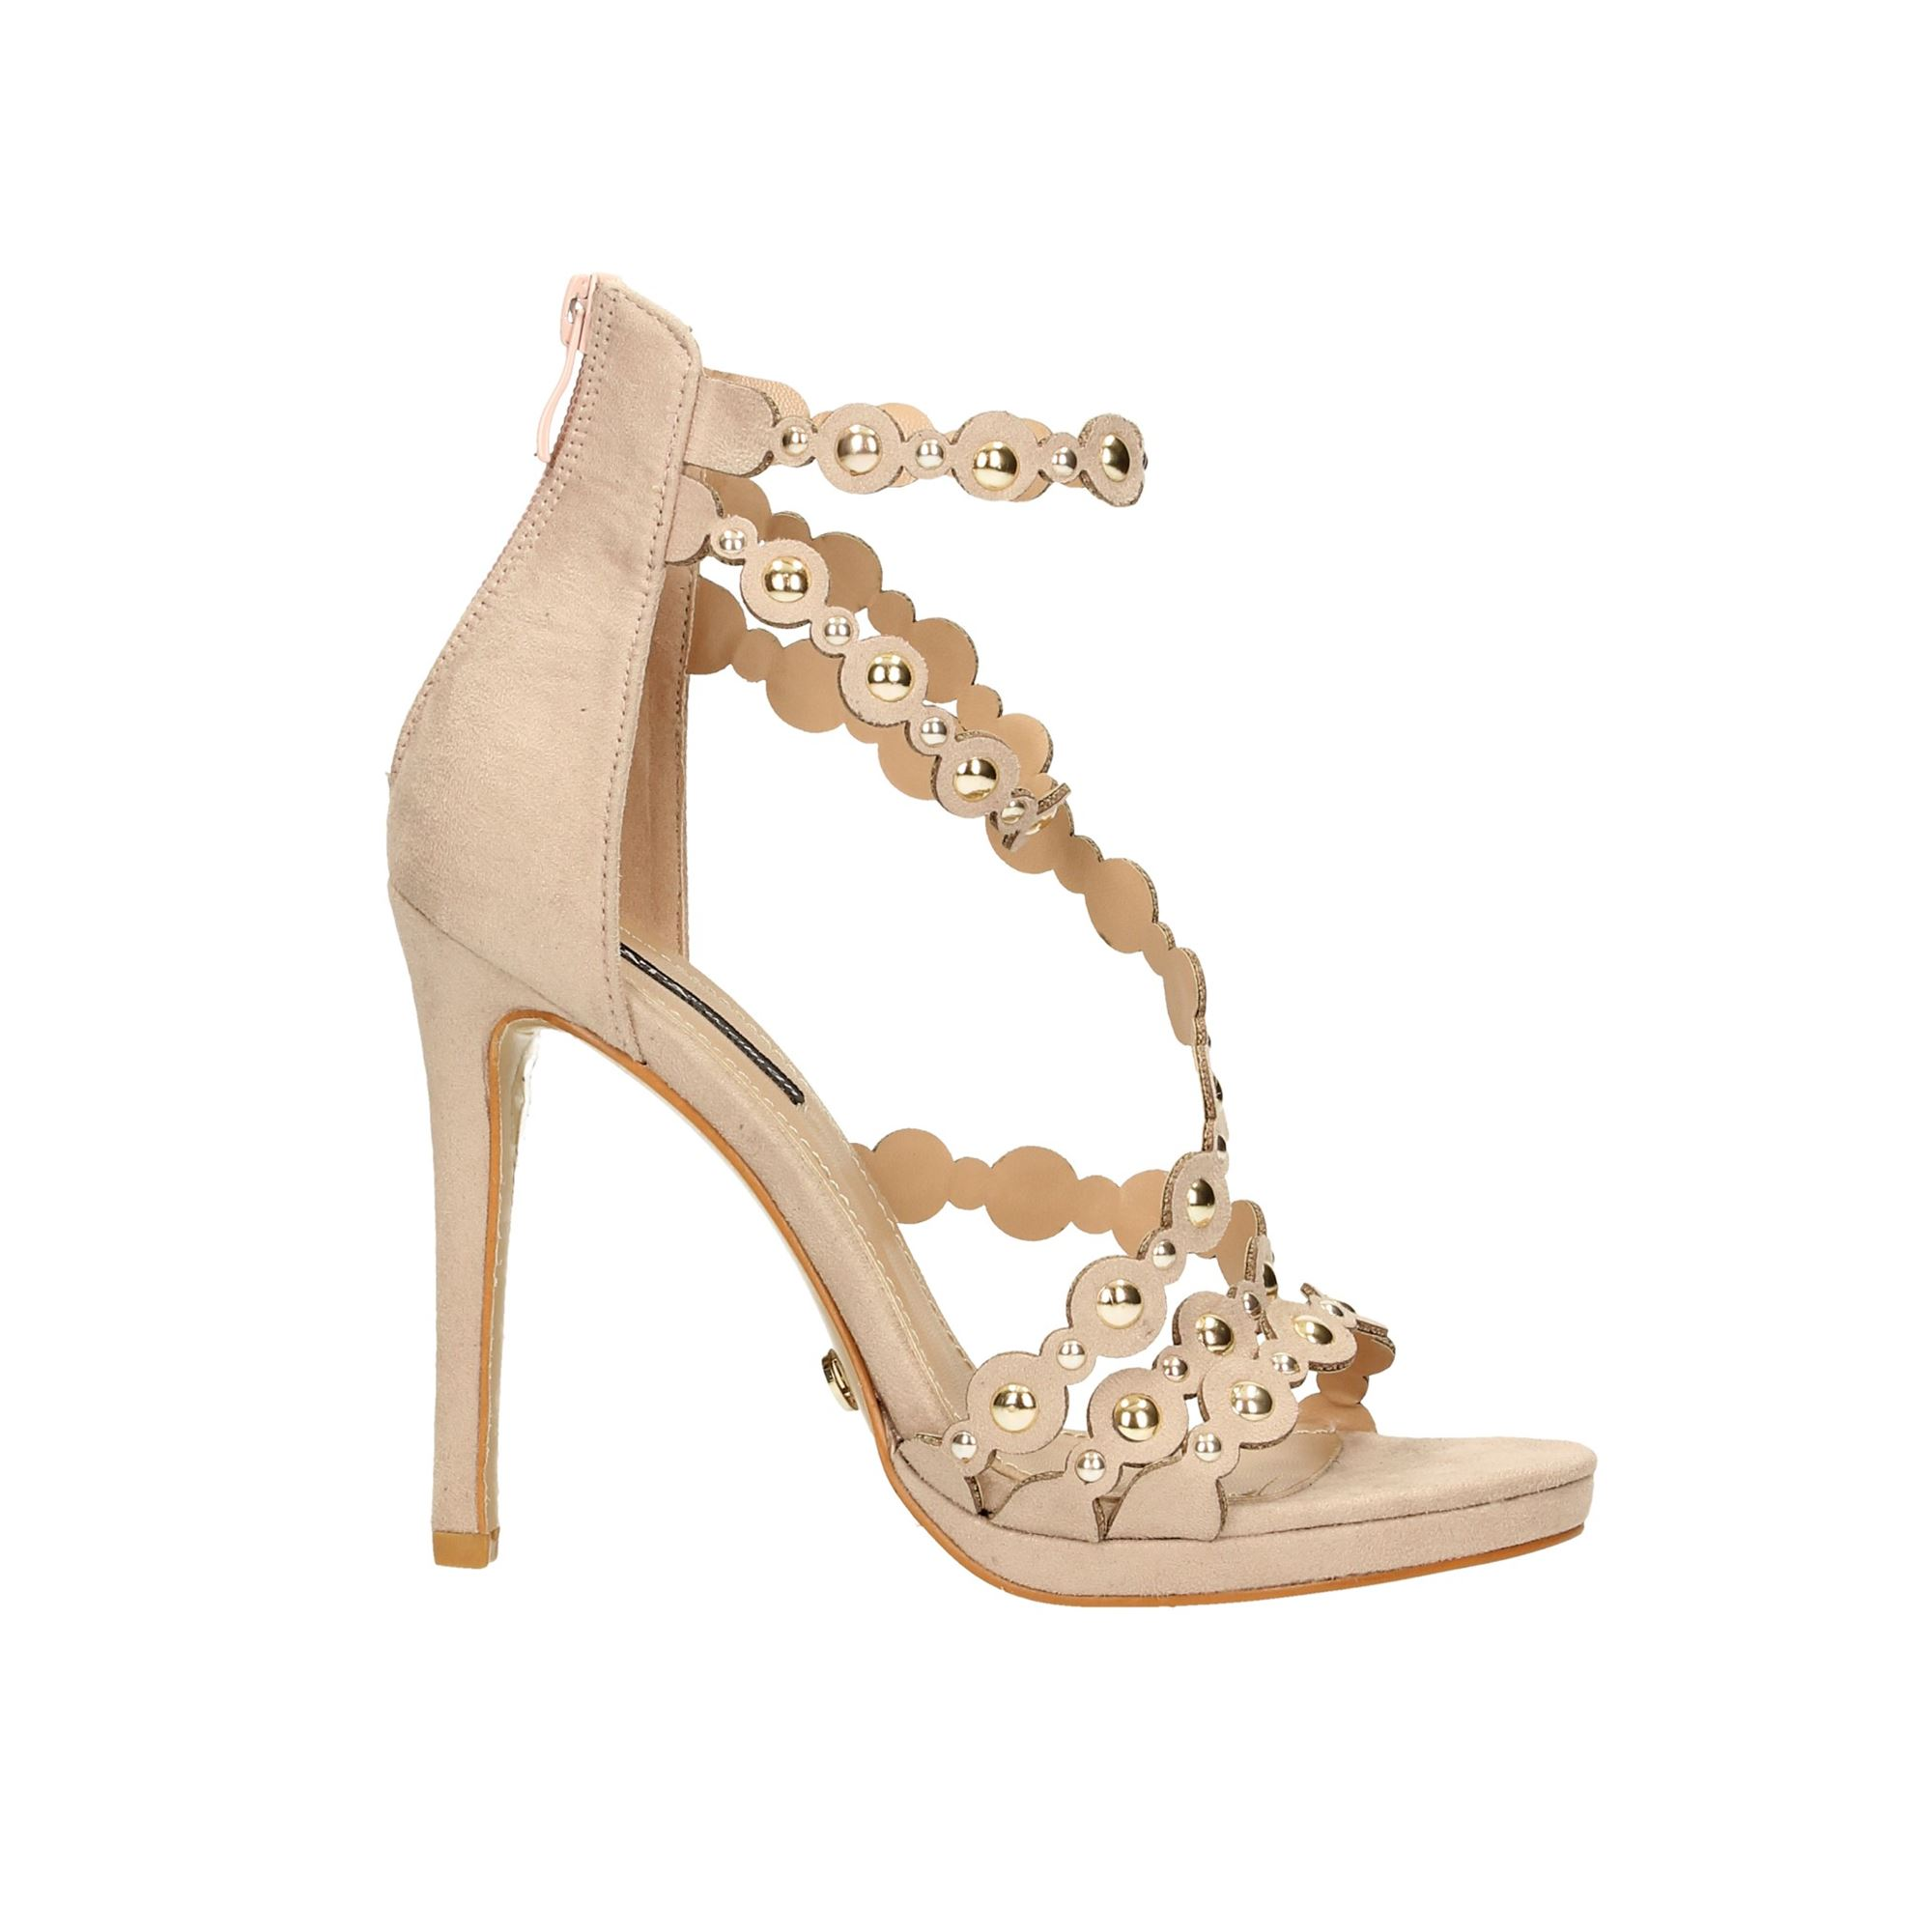 Tata Italia Shoes Woman Sandali Beige 1168-19